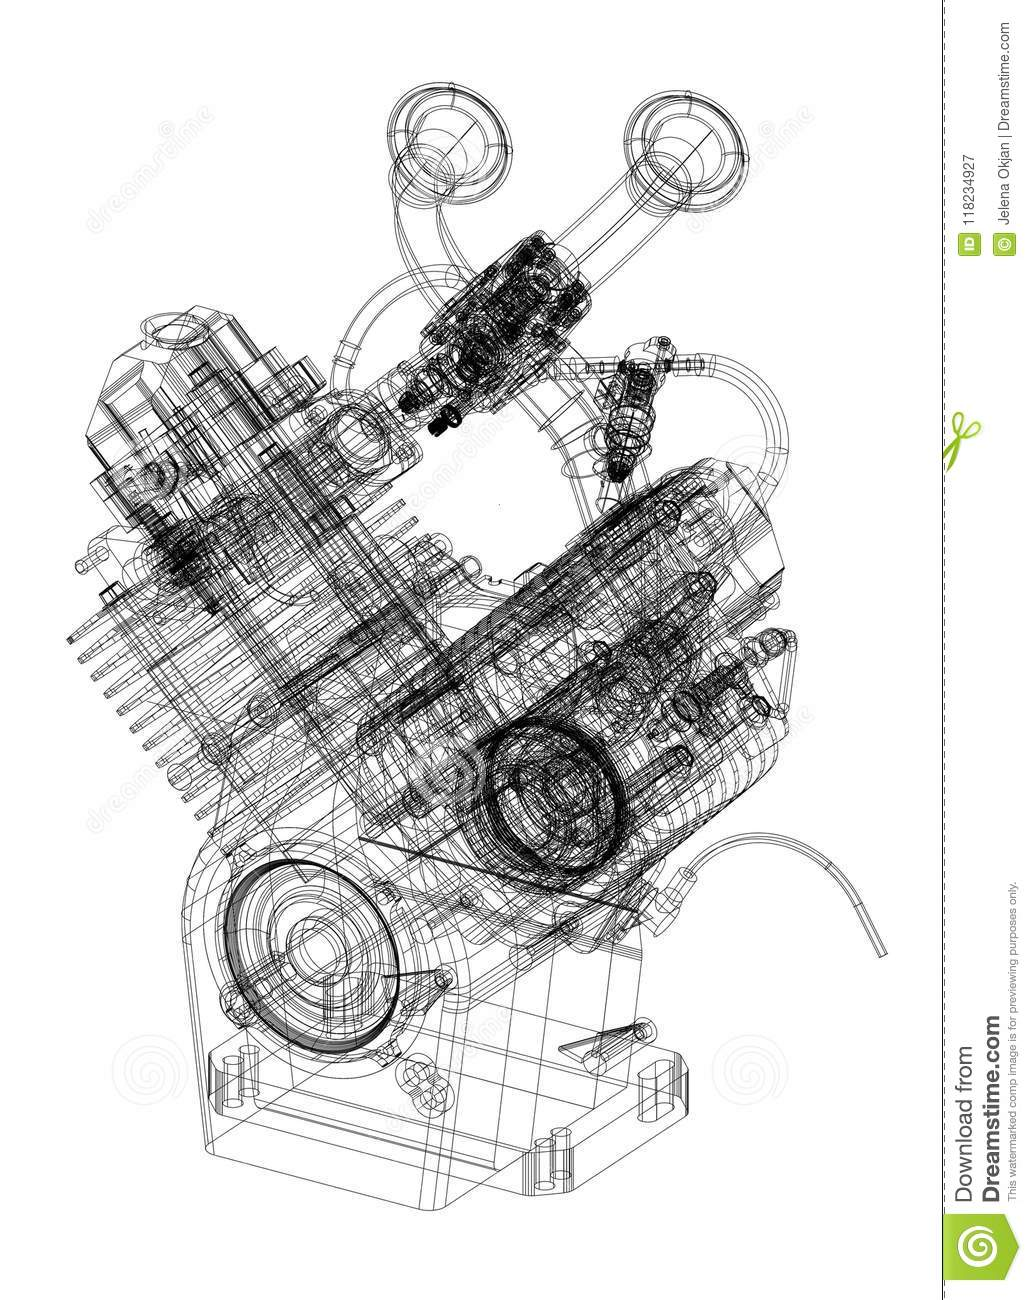 Download Car Engine Blueprint   Isolated Stock Illustration   Illustration  Of Gear, Architecture: 118234927